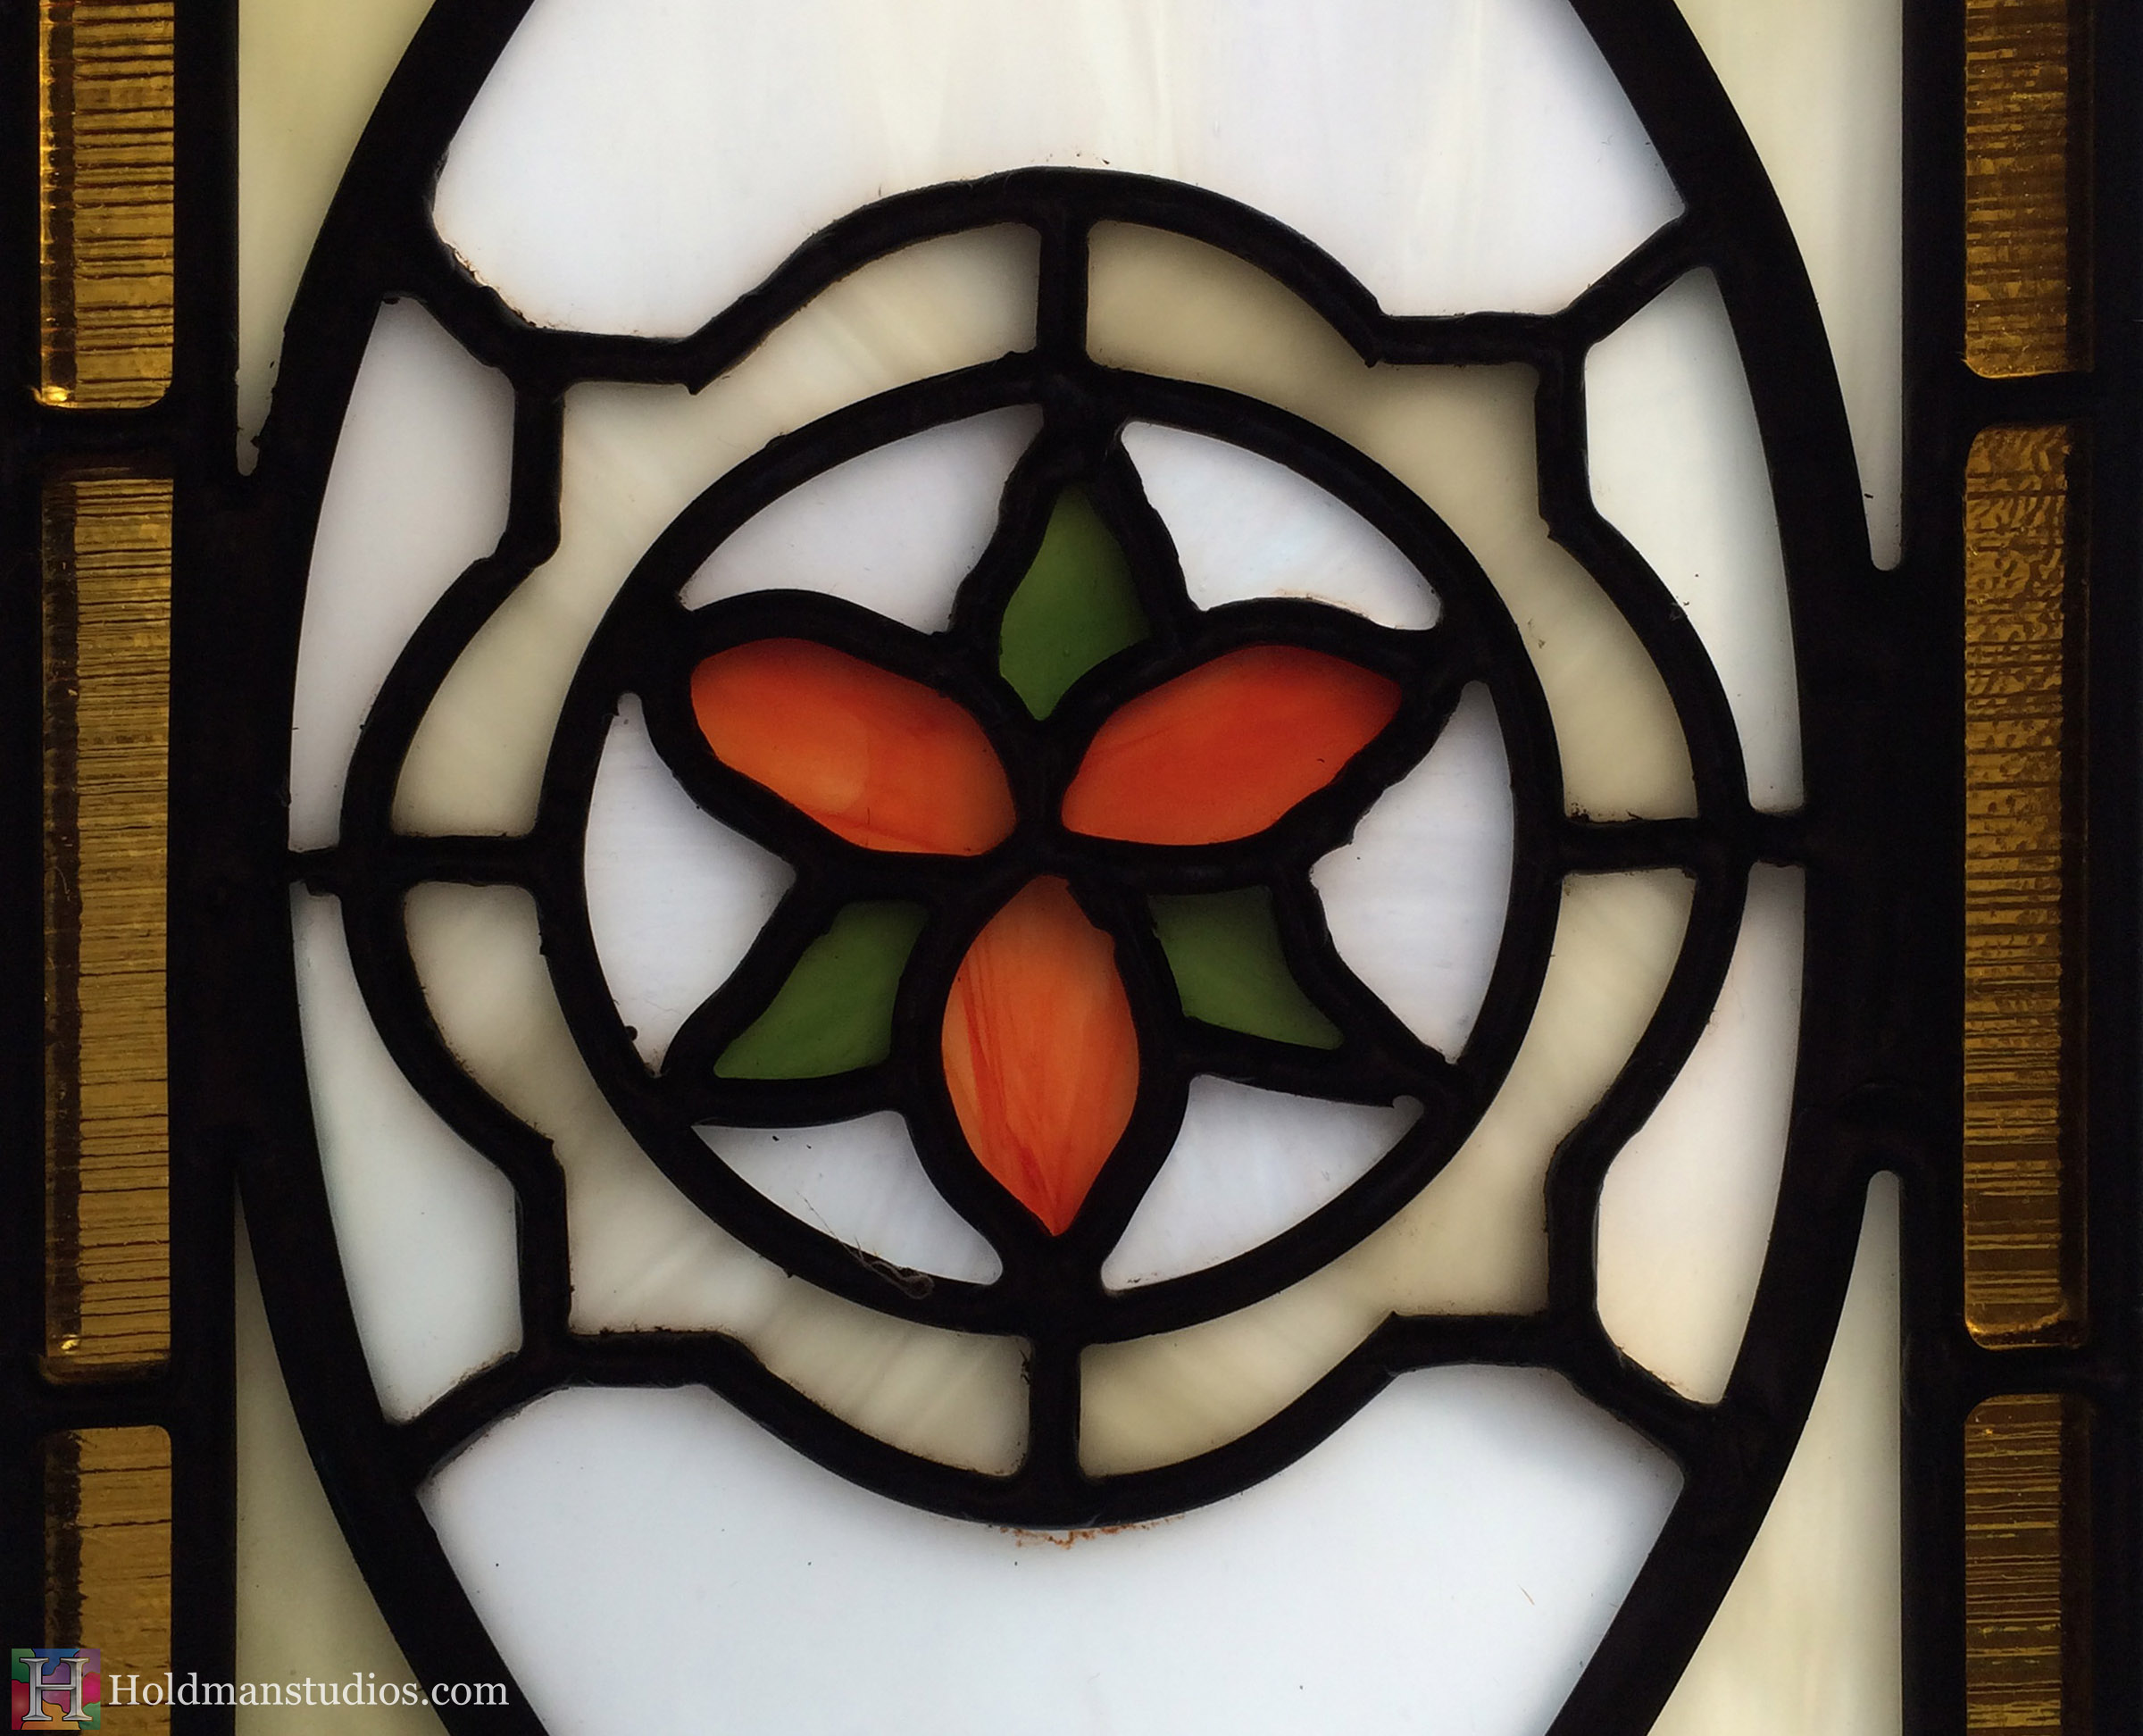 Holdman-Studios-Stained-Art-Glass-LDS-Mormon-Temple-Tijuana-Mexico-Orange-Bougainvillea-Bugambilia-Flower-Window-Crop.jpg